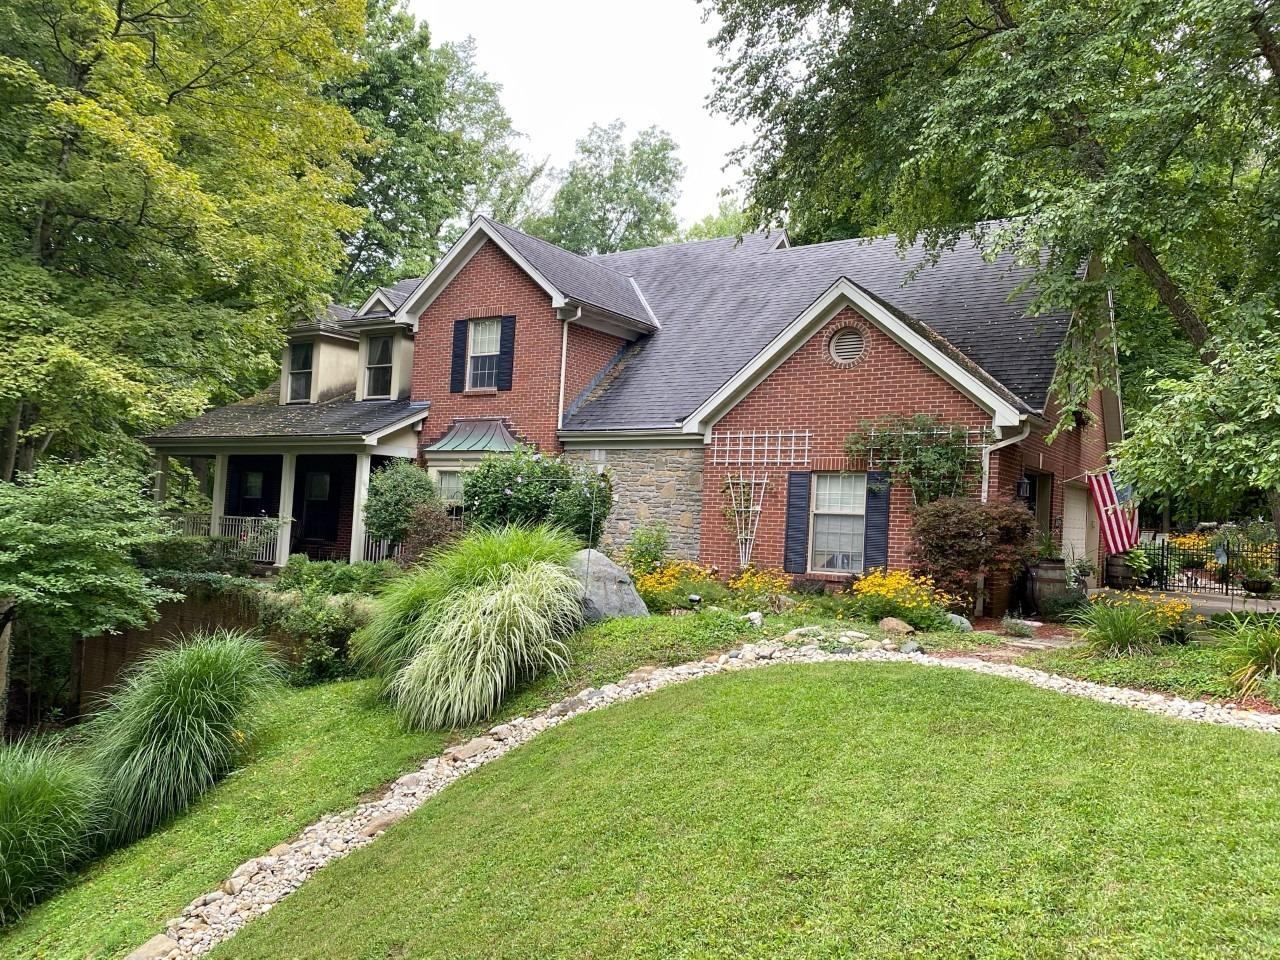 Property for sale at 1555 Sharjoy Court, Anderson Twp,  Ohio 45230